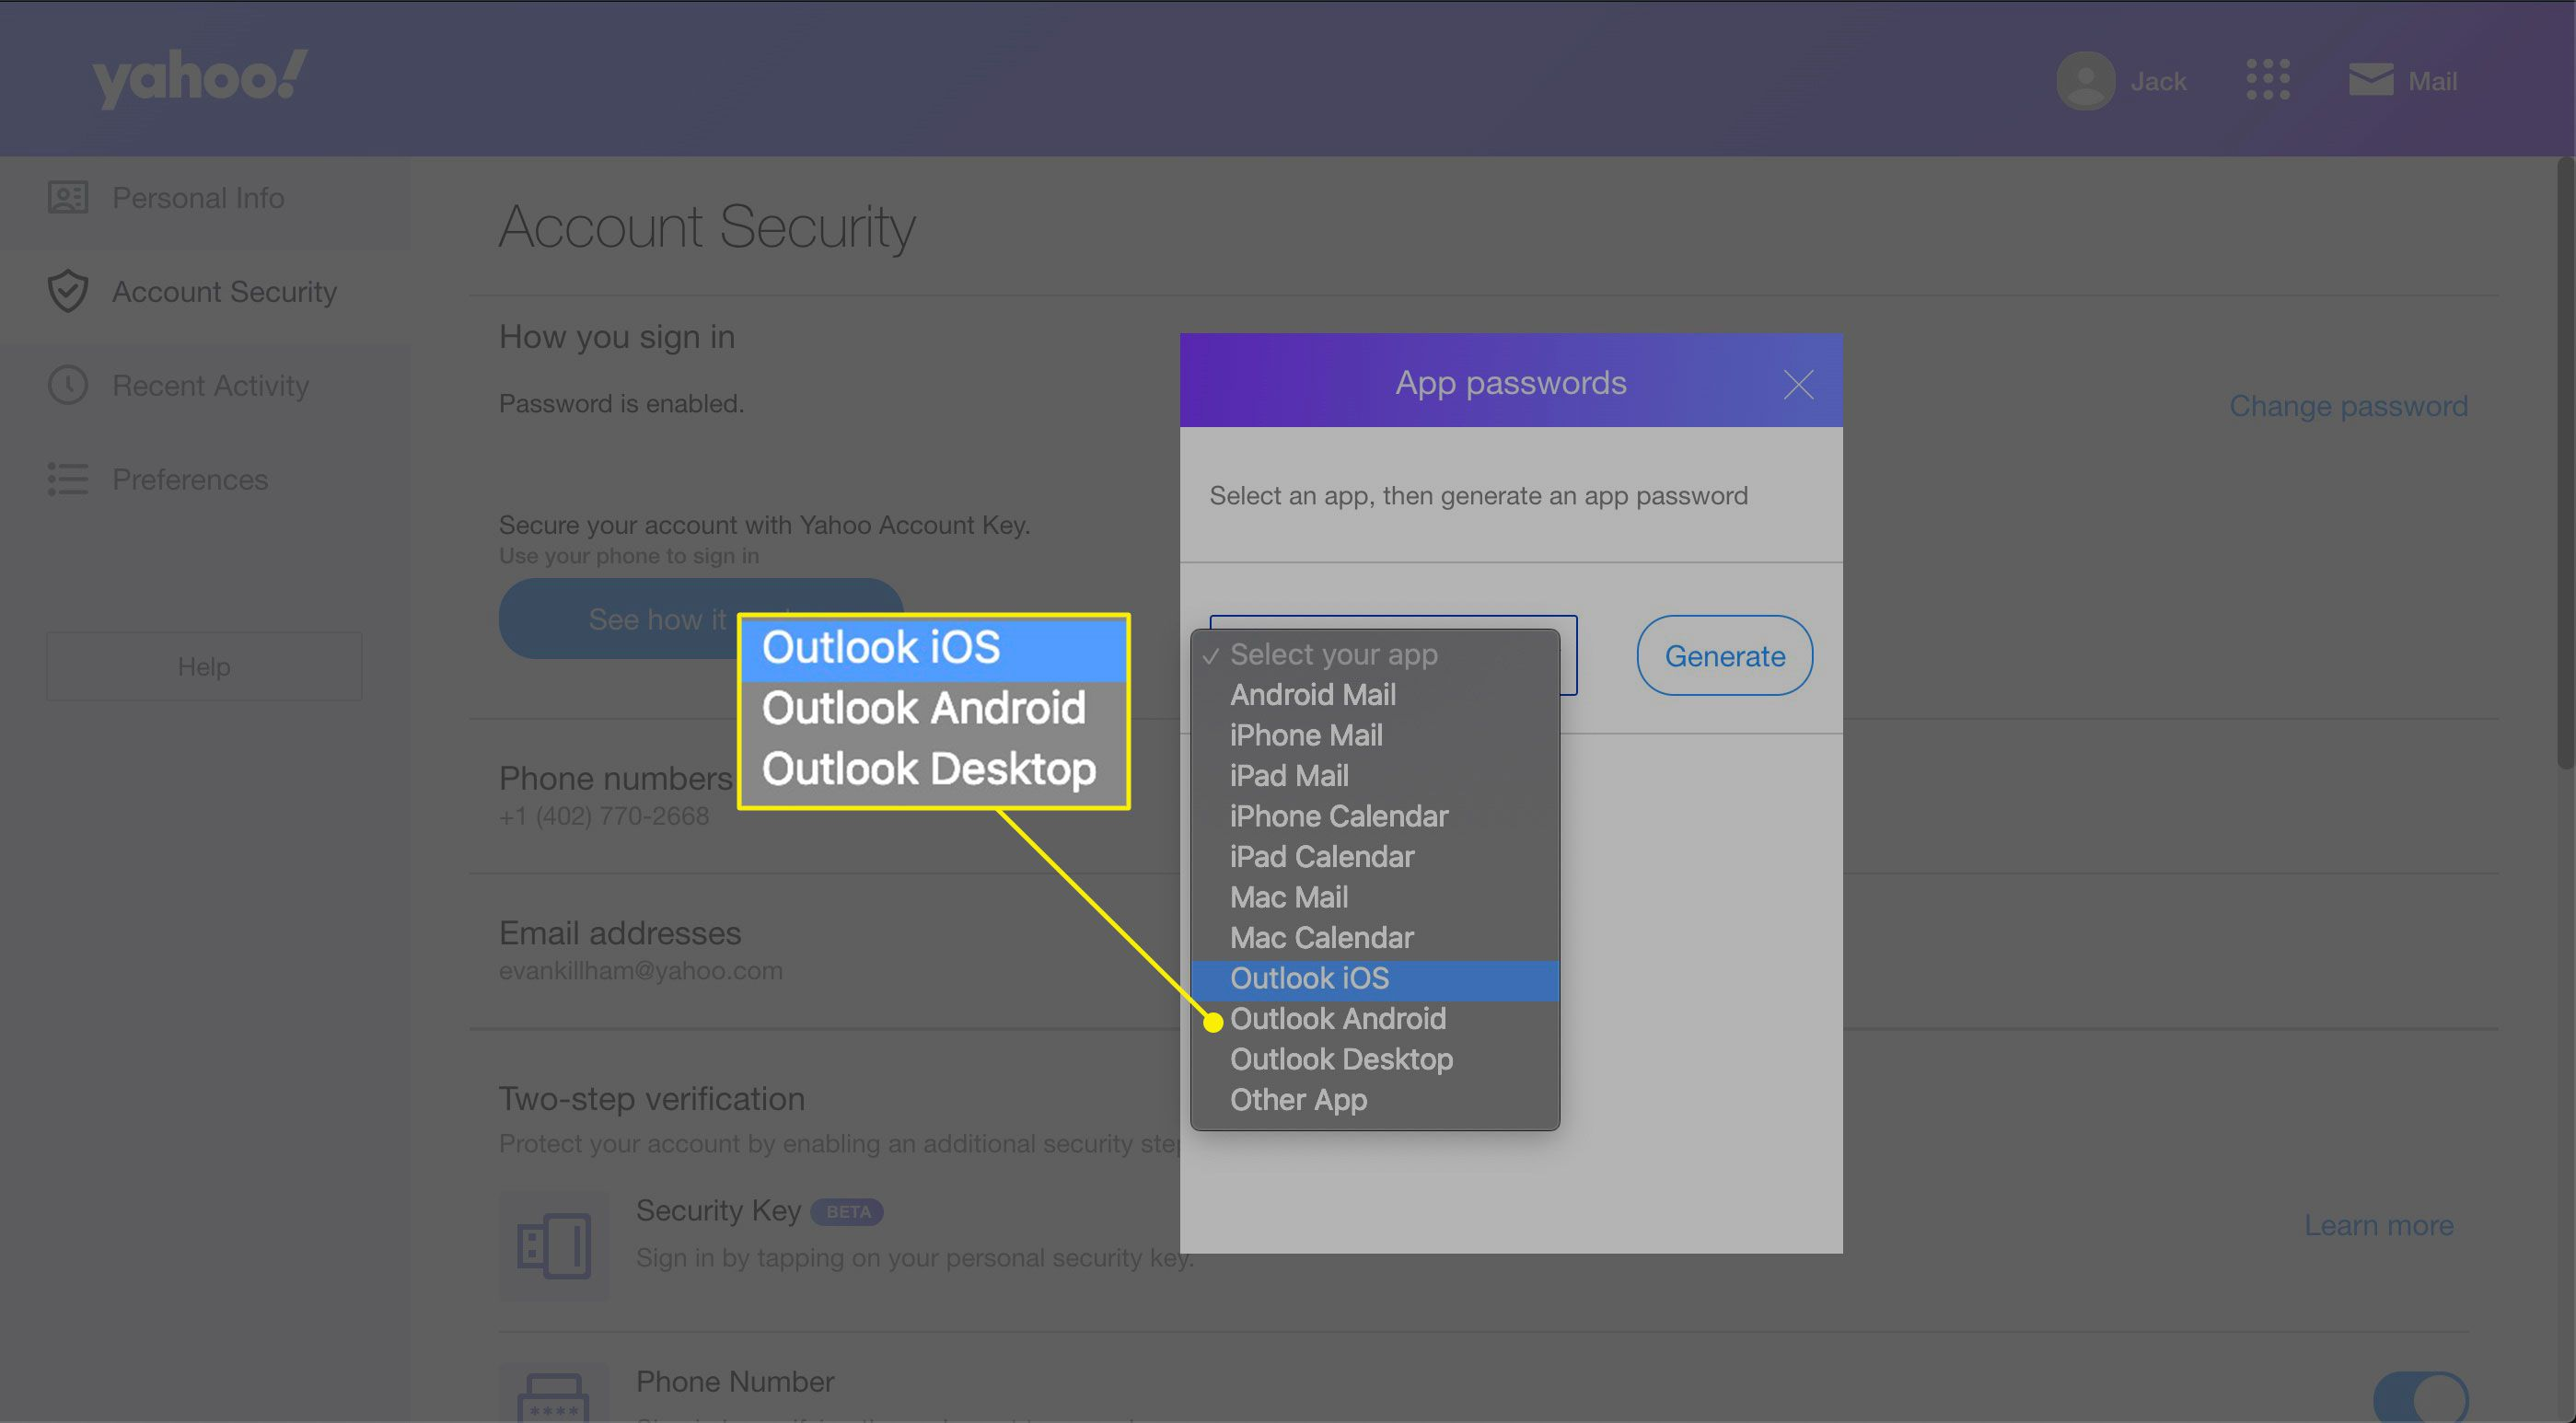 Select your app preferences in Yahoo Mail